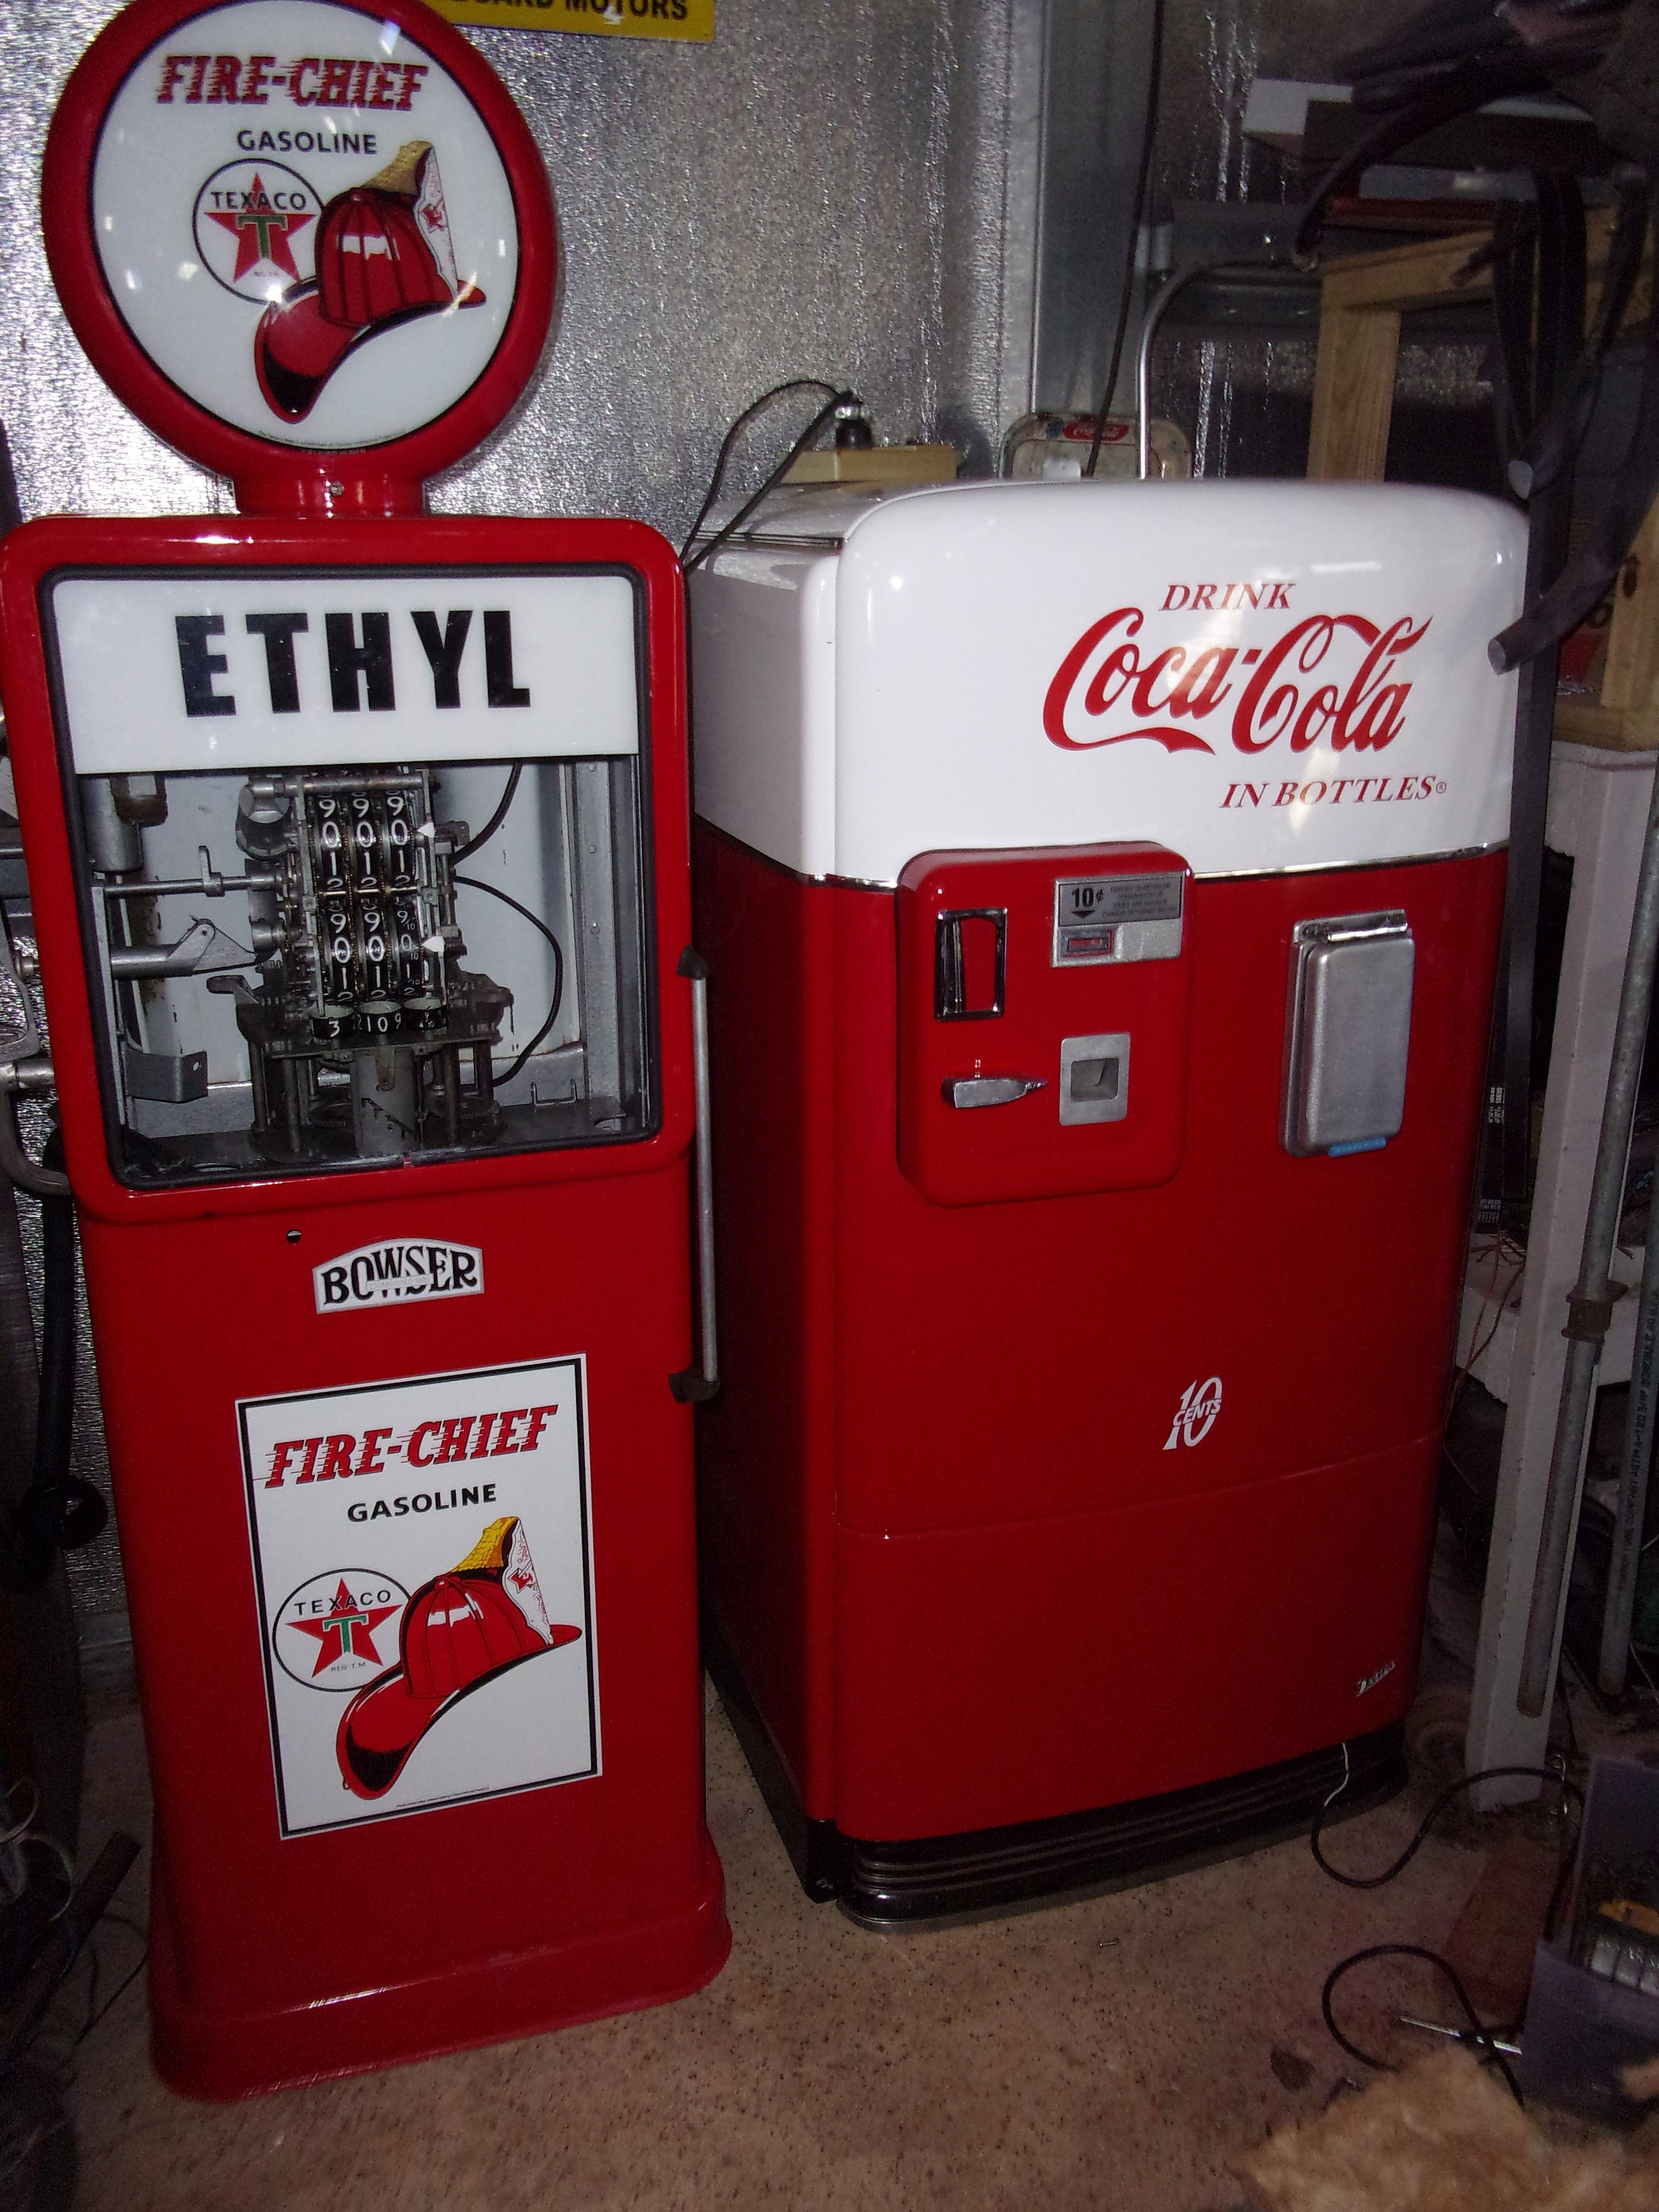 1958 Bowser gas pump (Veeder-Root 56 computer) and GE